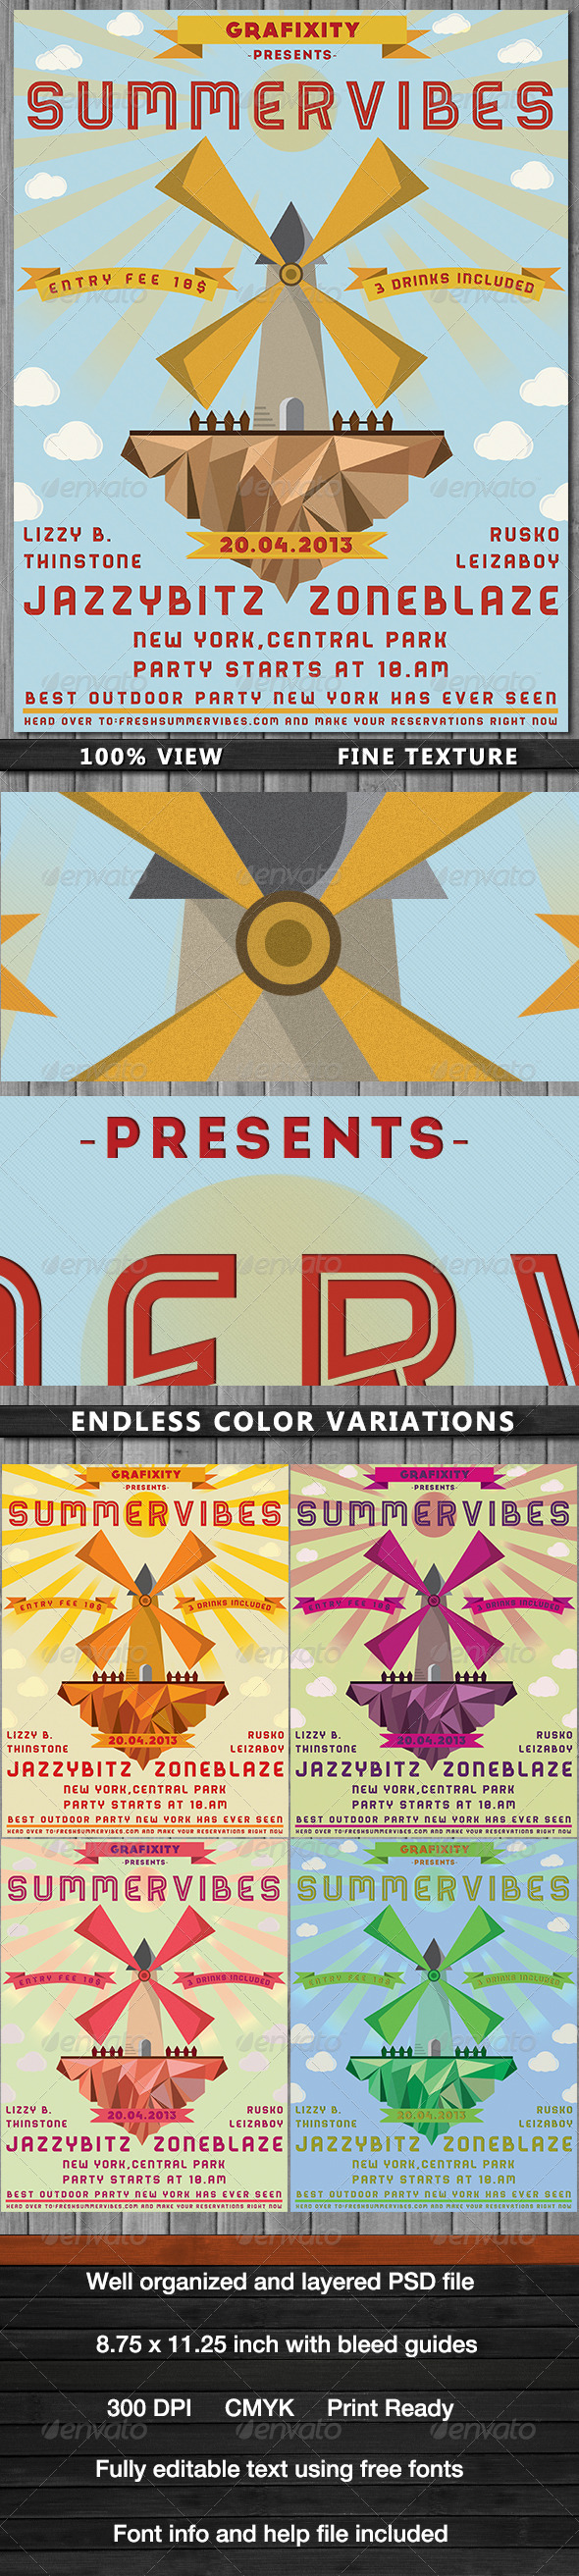 SummerVibes-Retro Summer Poster/Flyer - Flyers Print Templates